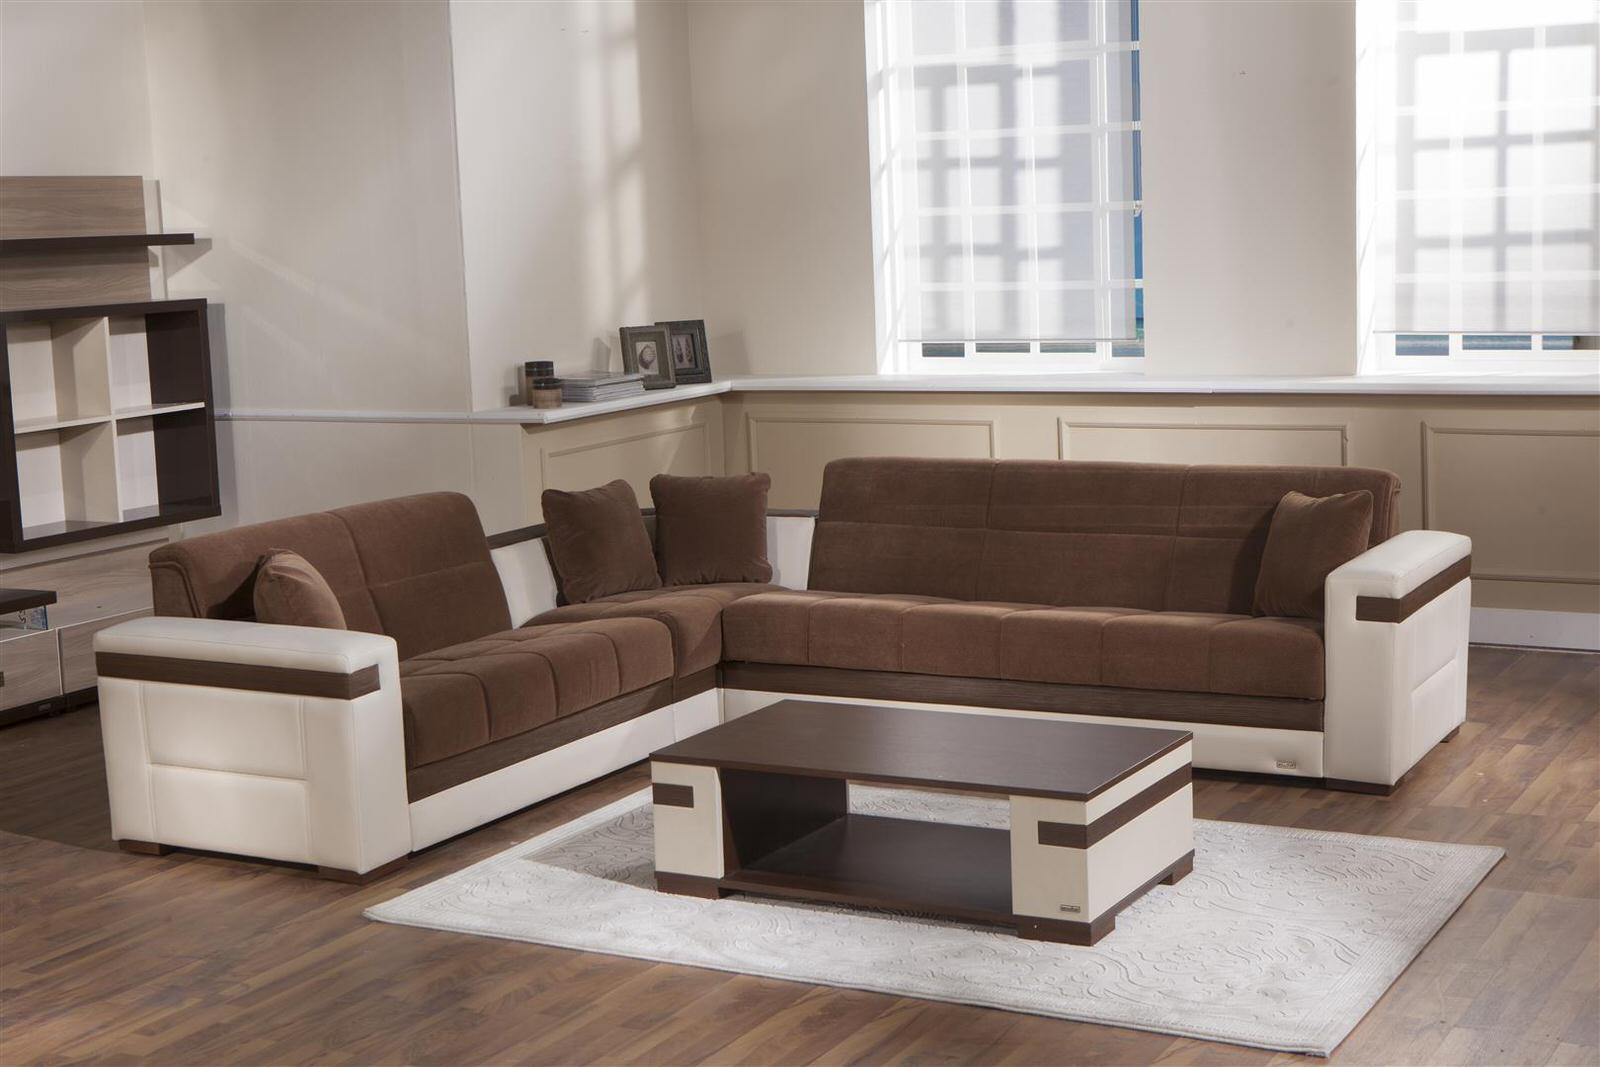 Moon Troya Brown Sectional Sofa W Cream Arms By Sunset Istikbal Furniture